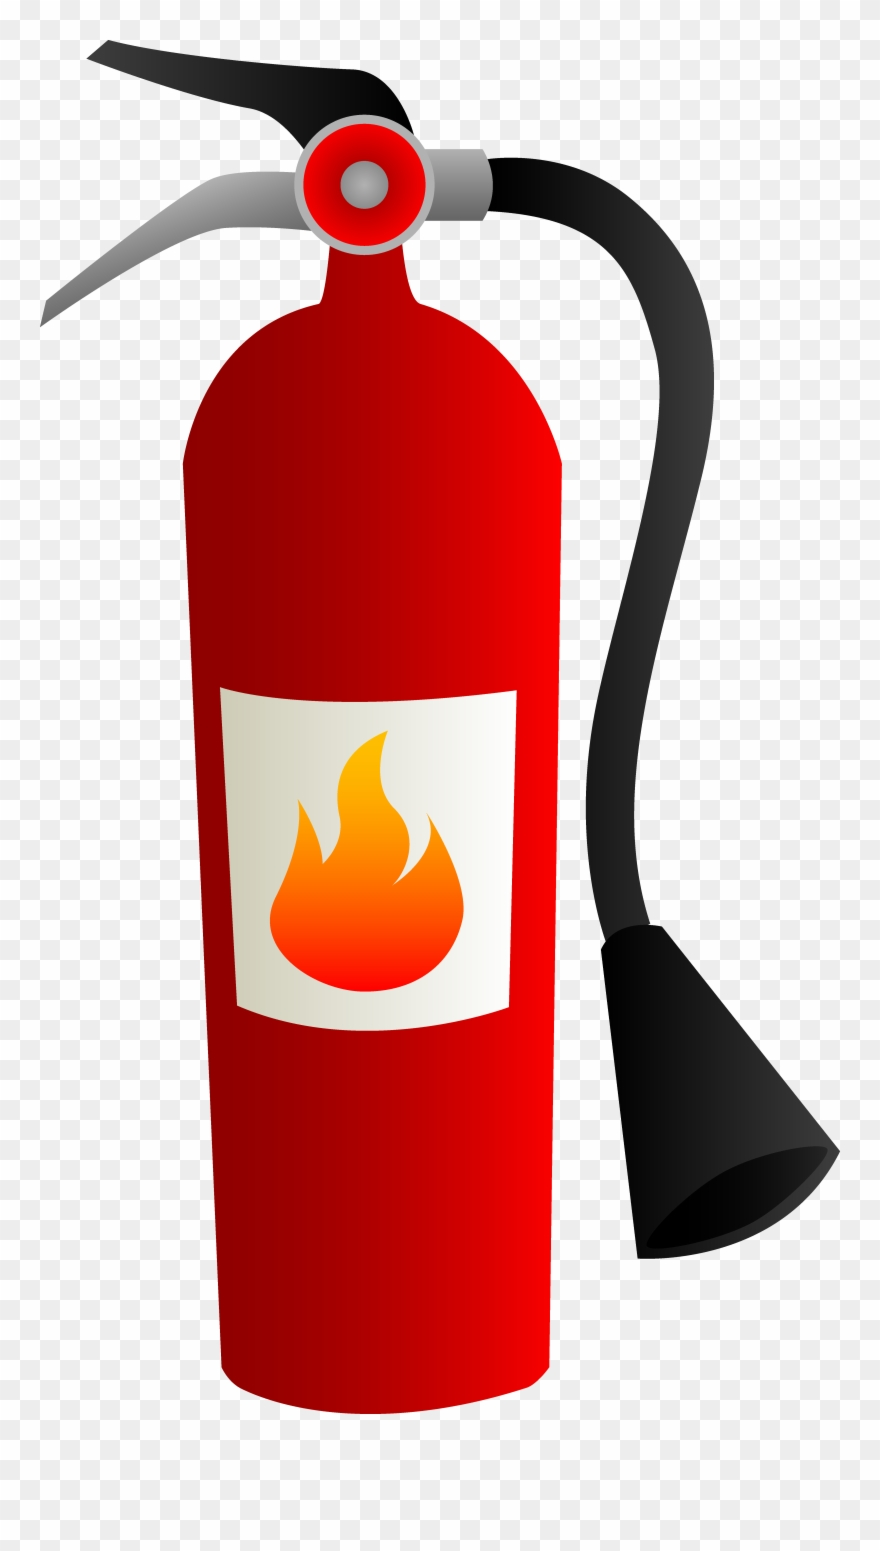 medium resolution of fire safety clipart png download